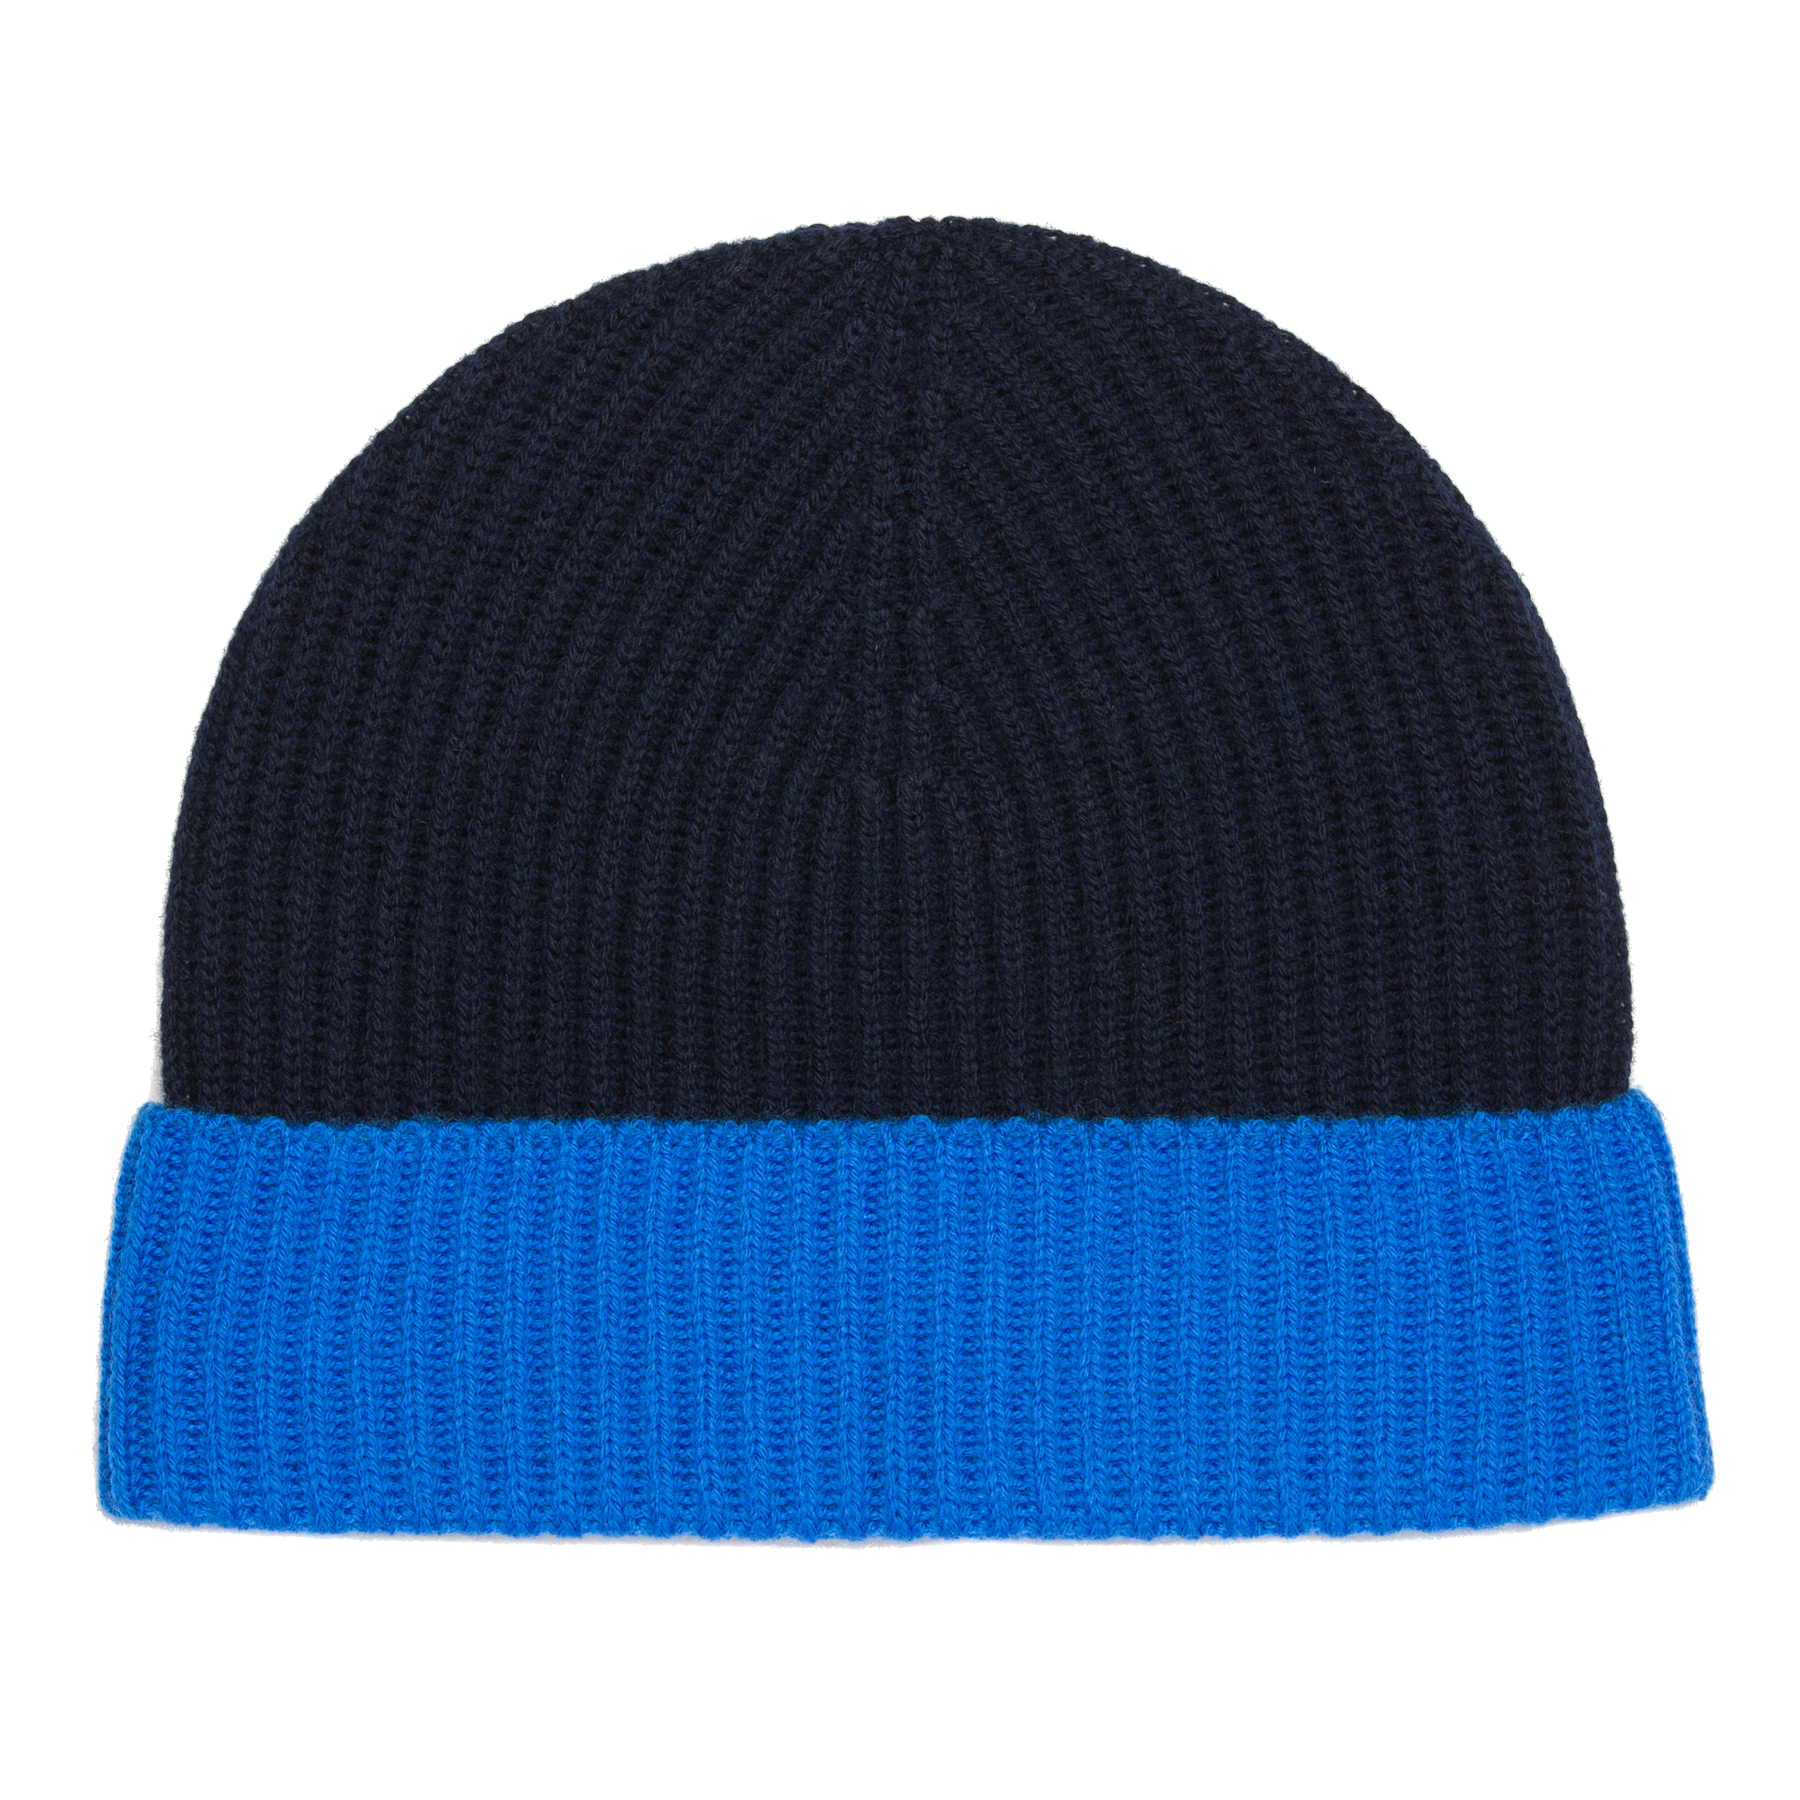 RIB HAT - ROYAL BLUE